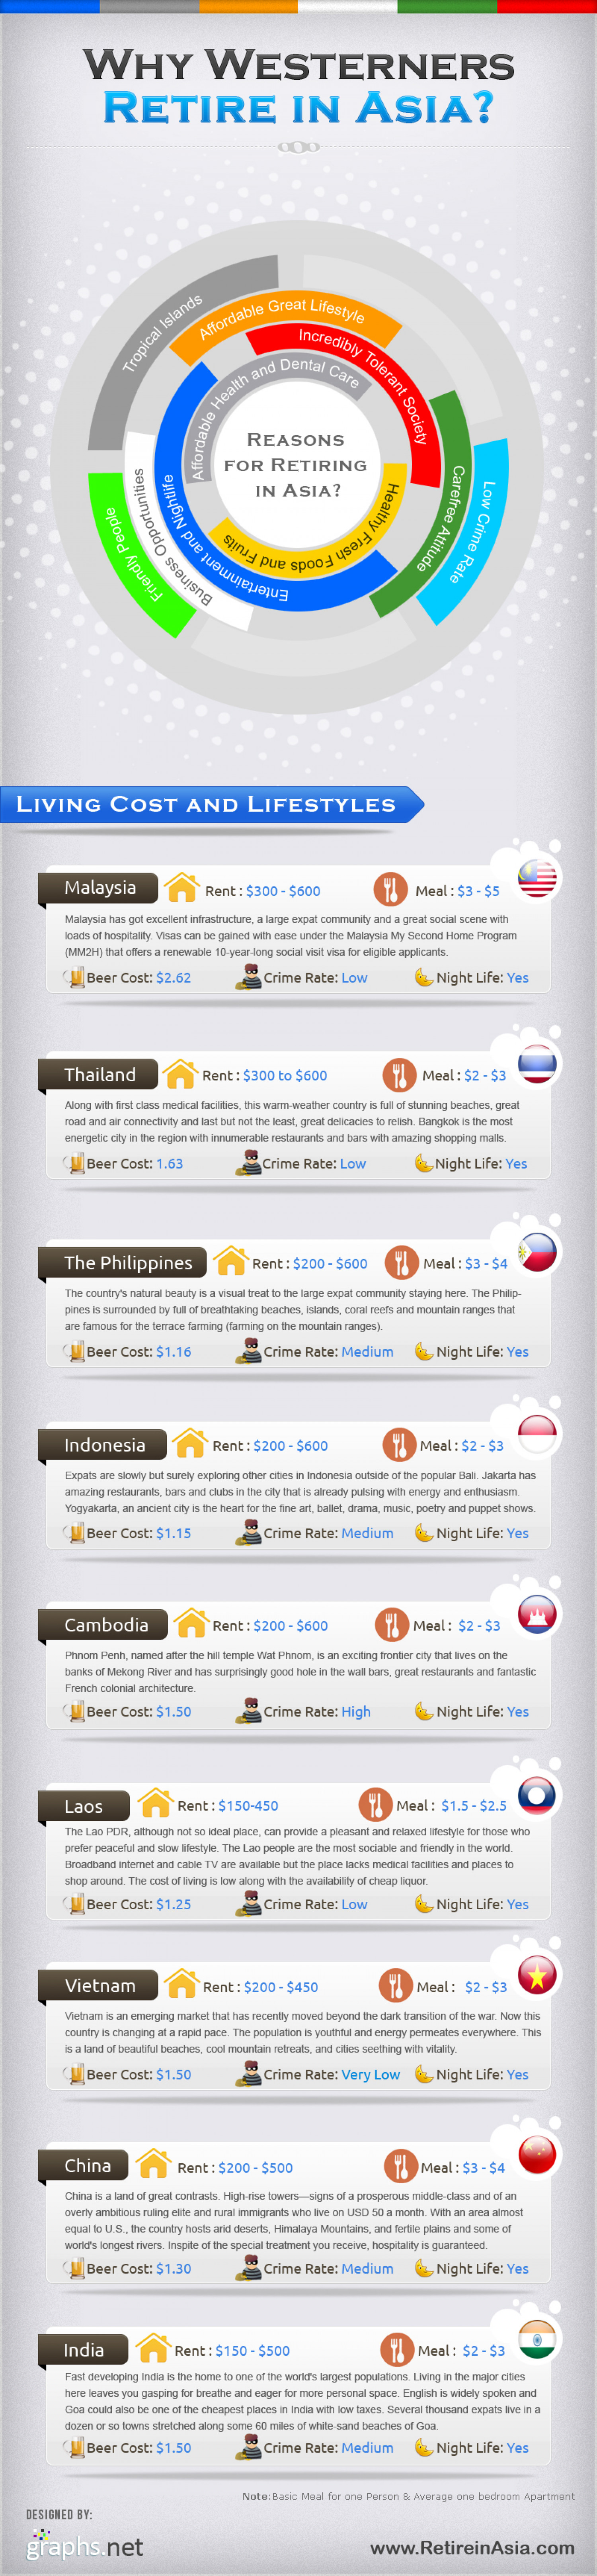 Why Westerners Retire In Asia Infographic